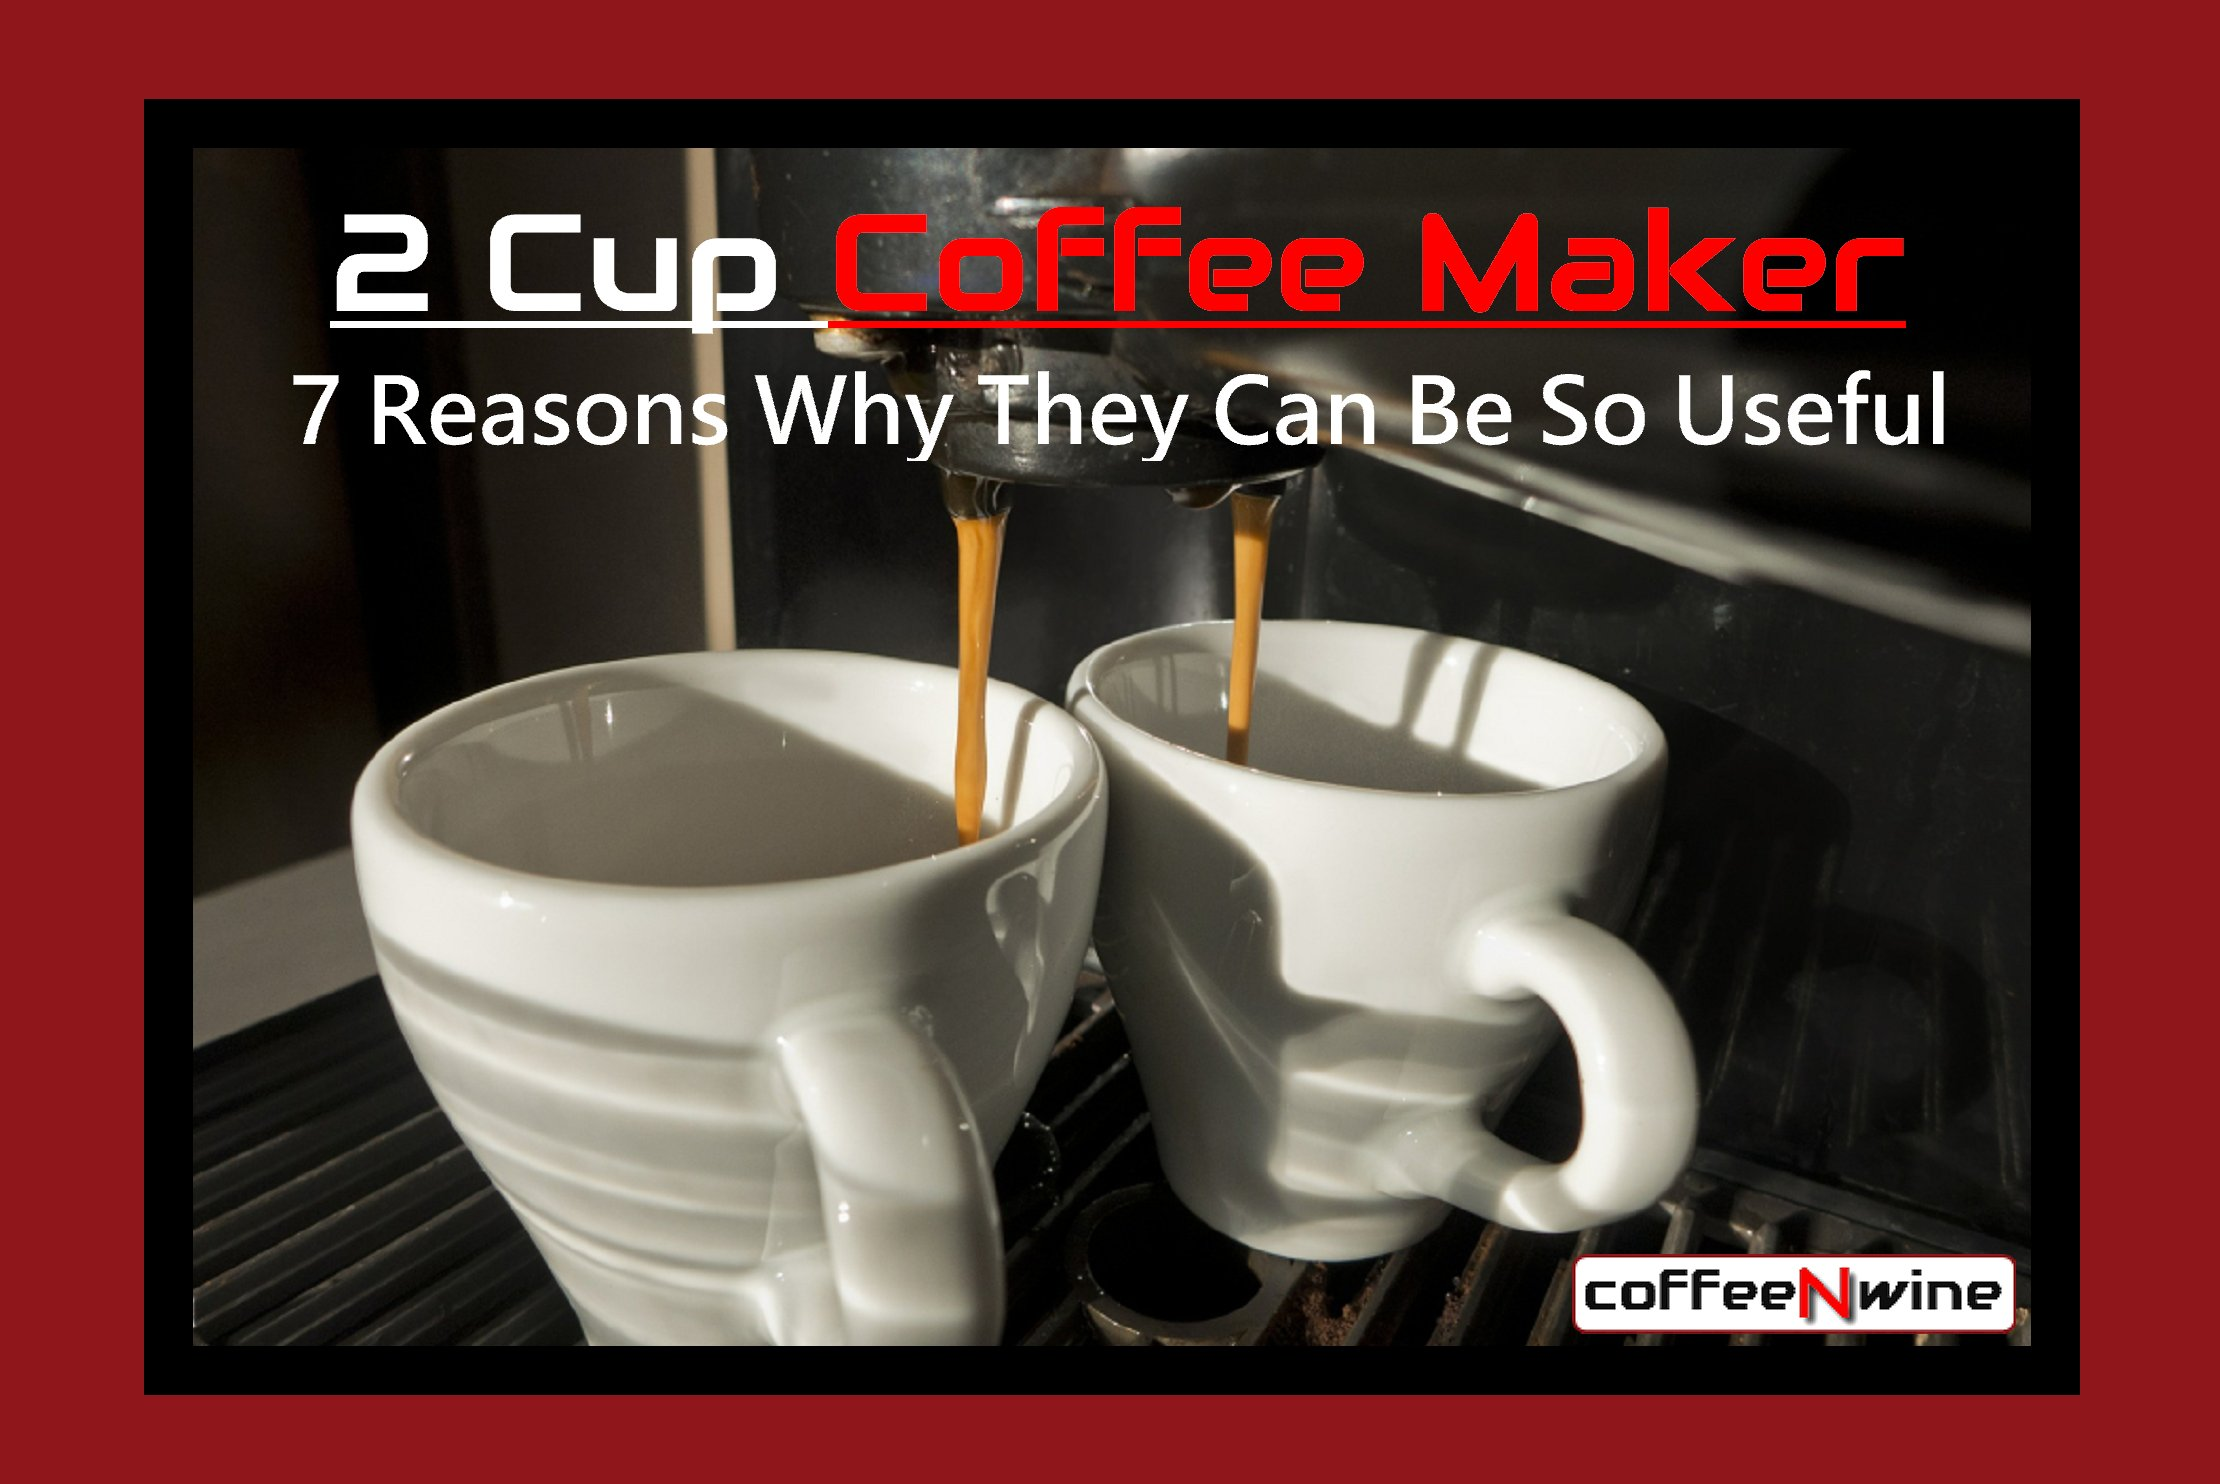 2 Cup Coffee Maker - 7 Reasons Why They Can Be So Useful